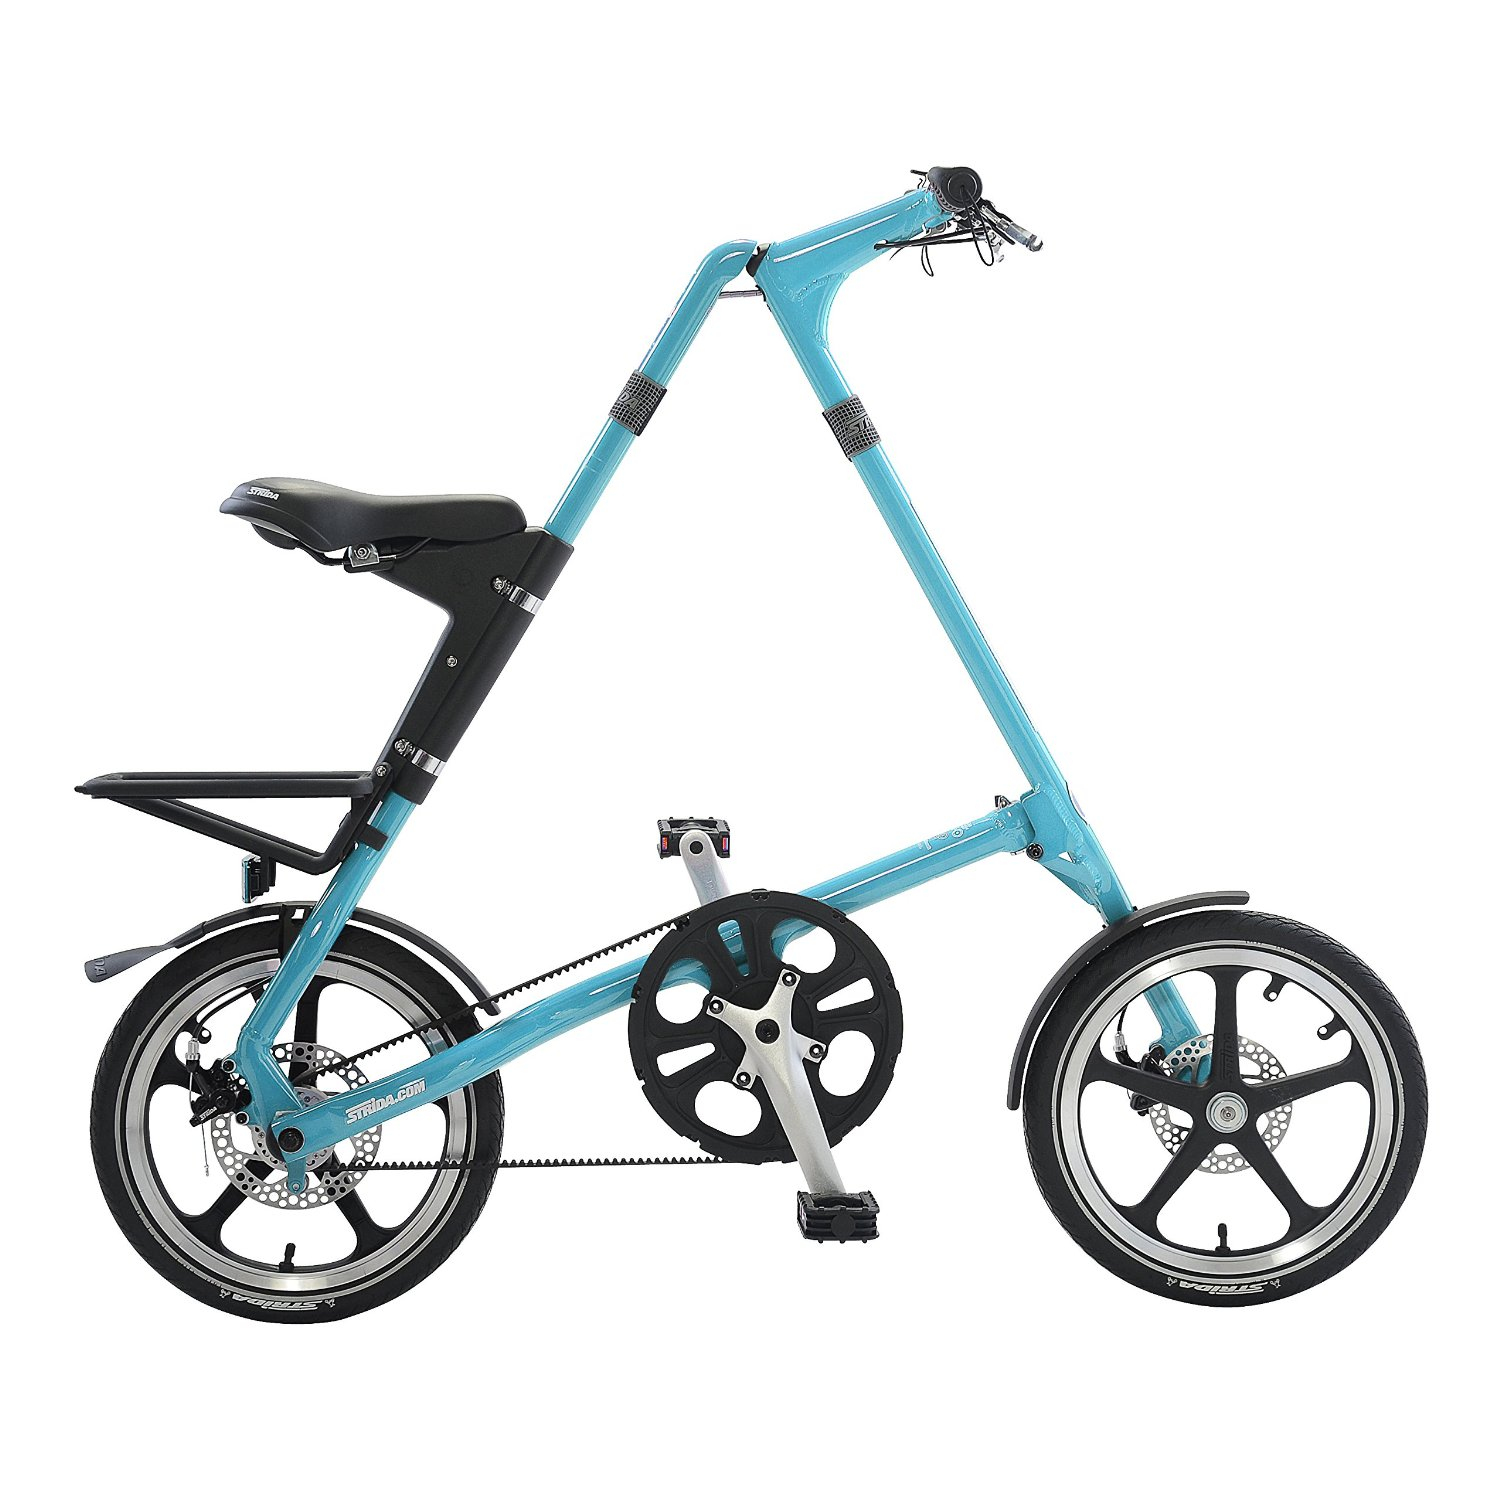 STRiDA LT Review